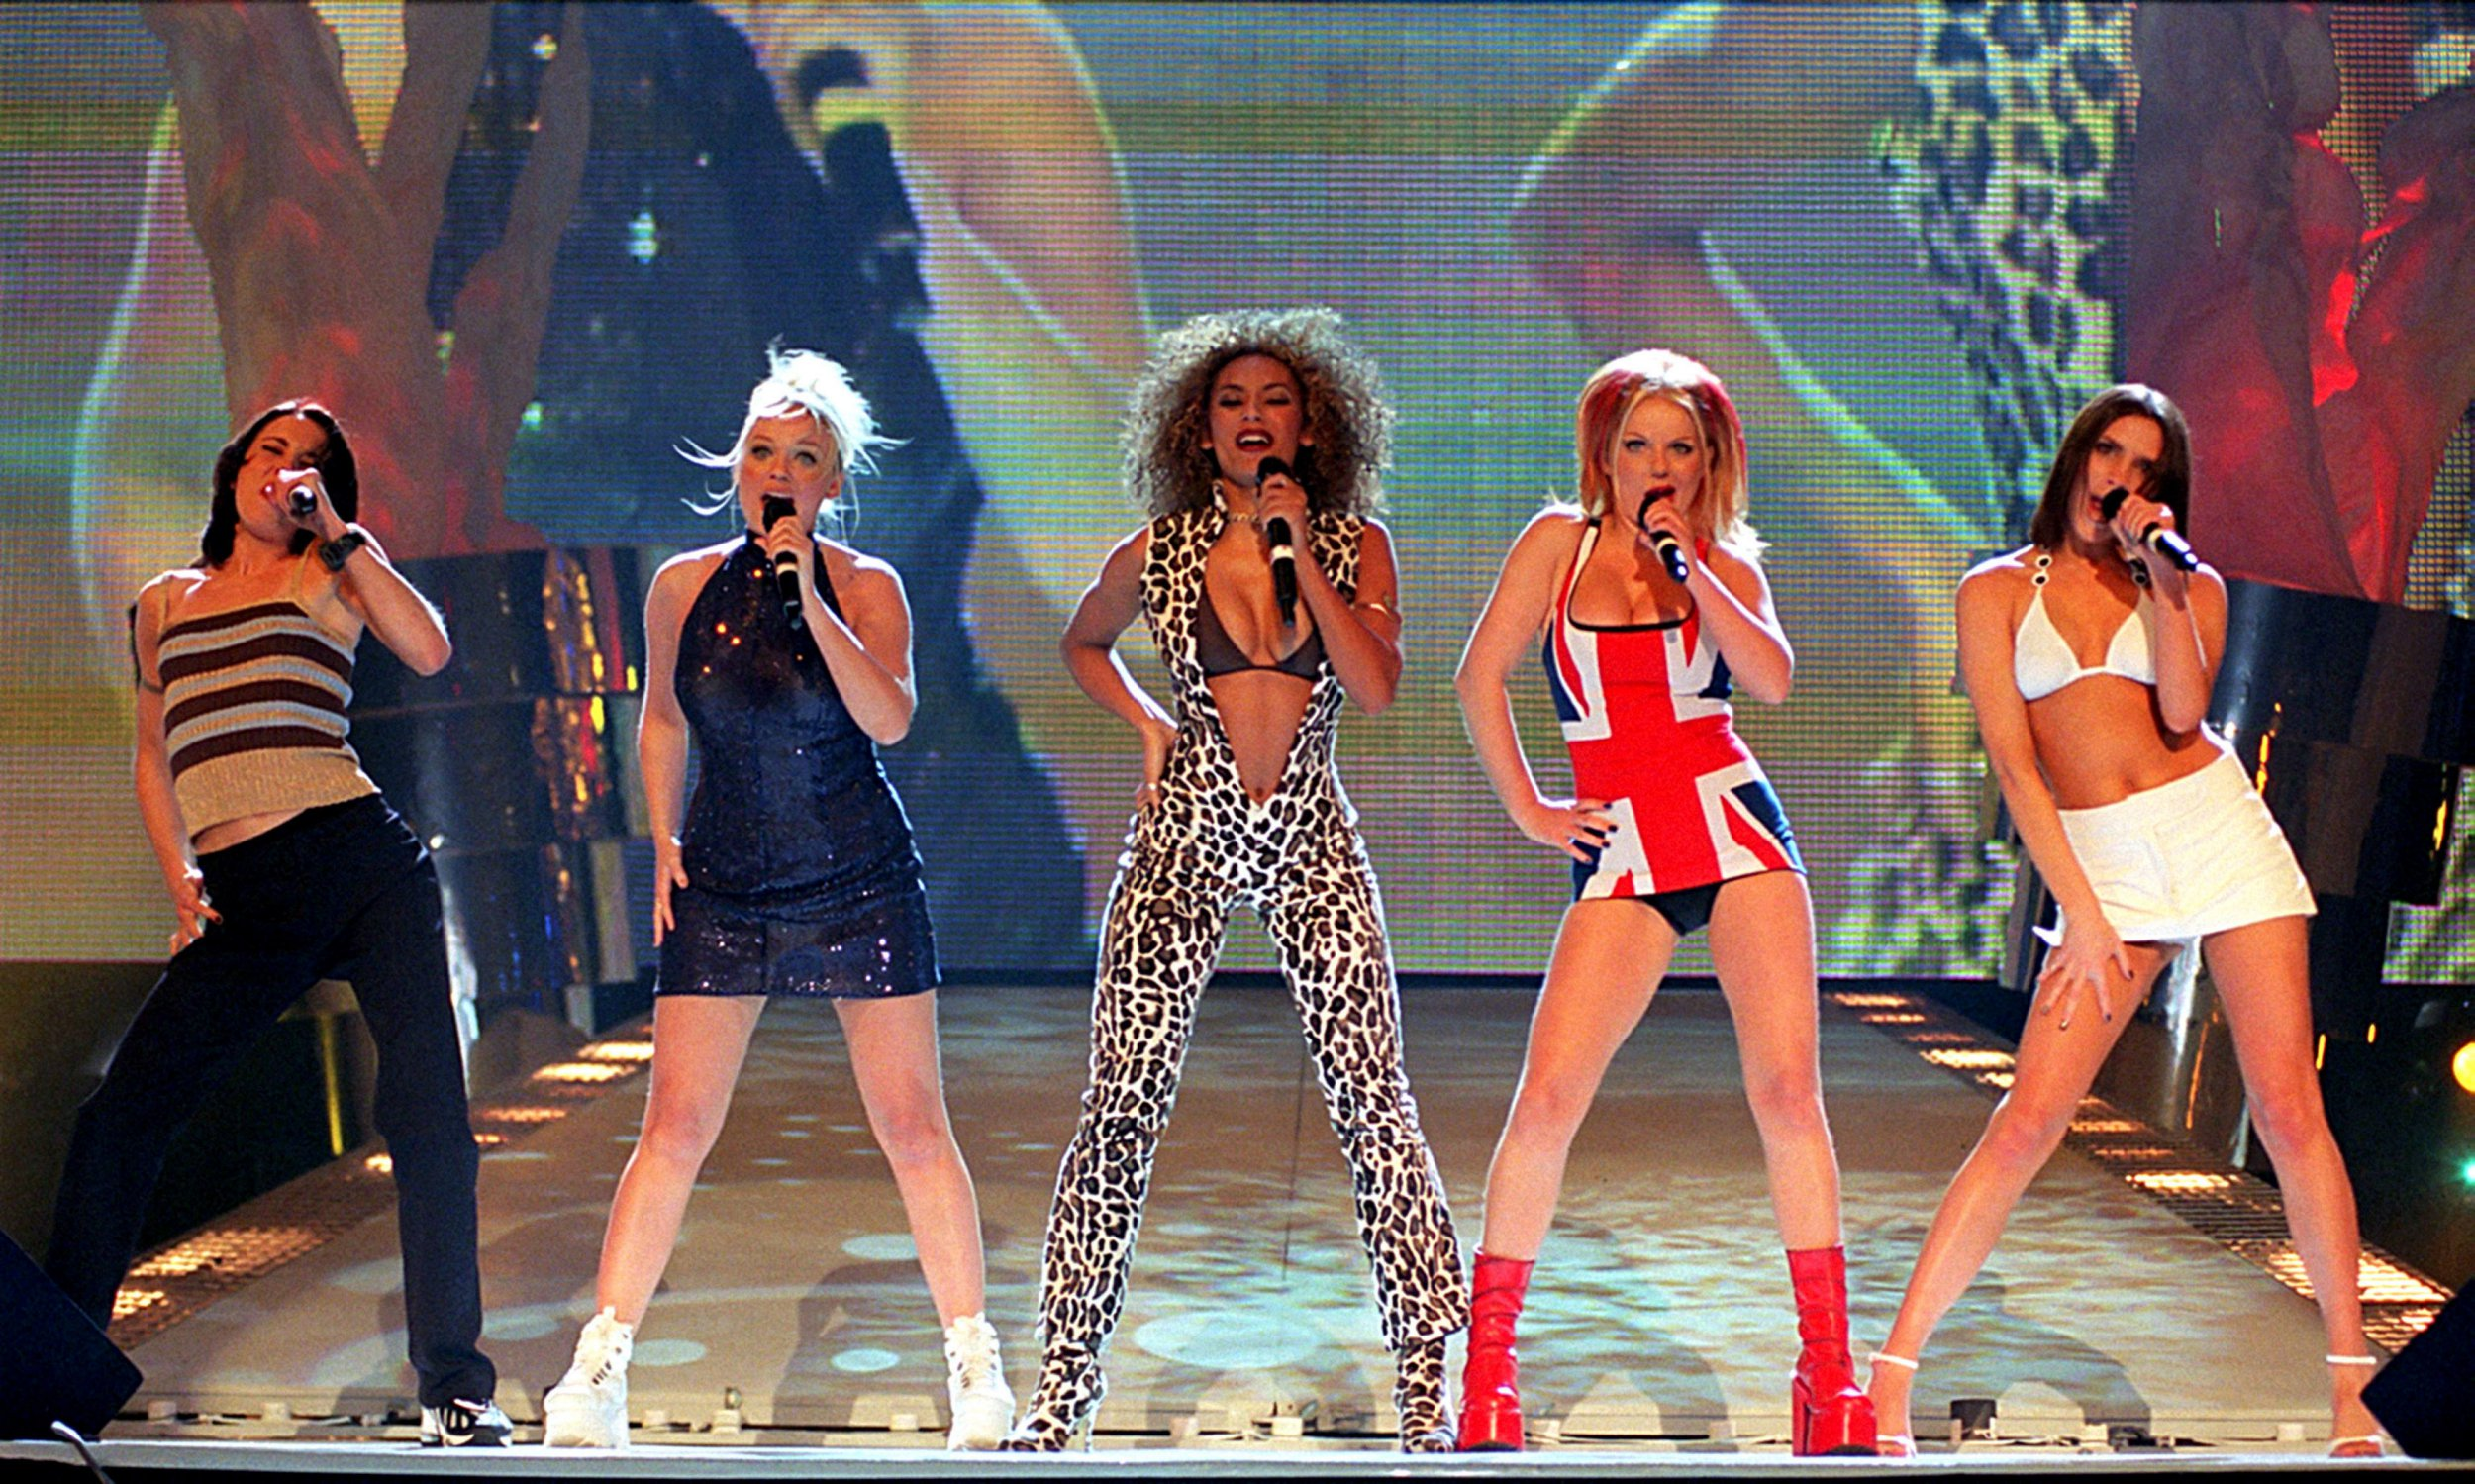 File photo dated 24/02/97of the Spice Girls performing at the Brit Awards ceremony. The band is believed to be gearing up to announce a UK stadium tour for 2019 - but as a four-piece without Victoria Beckham.